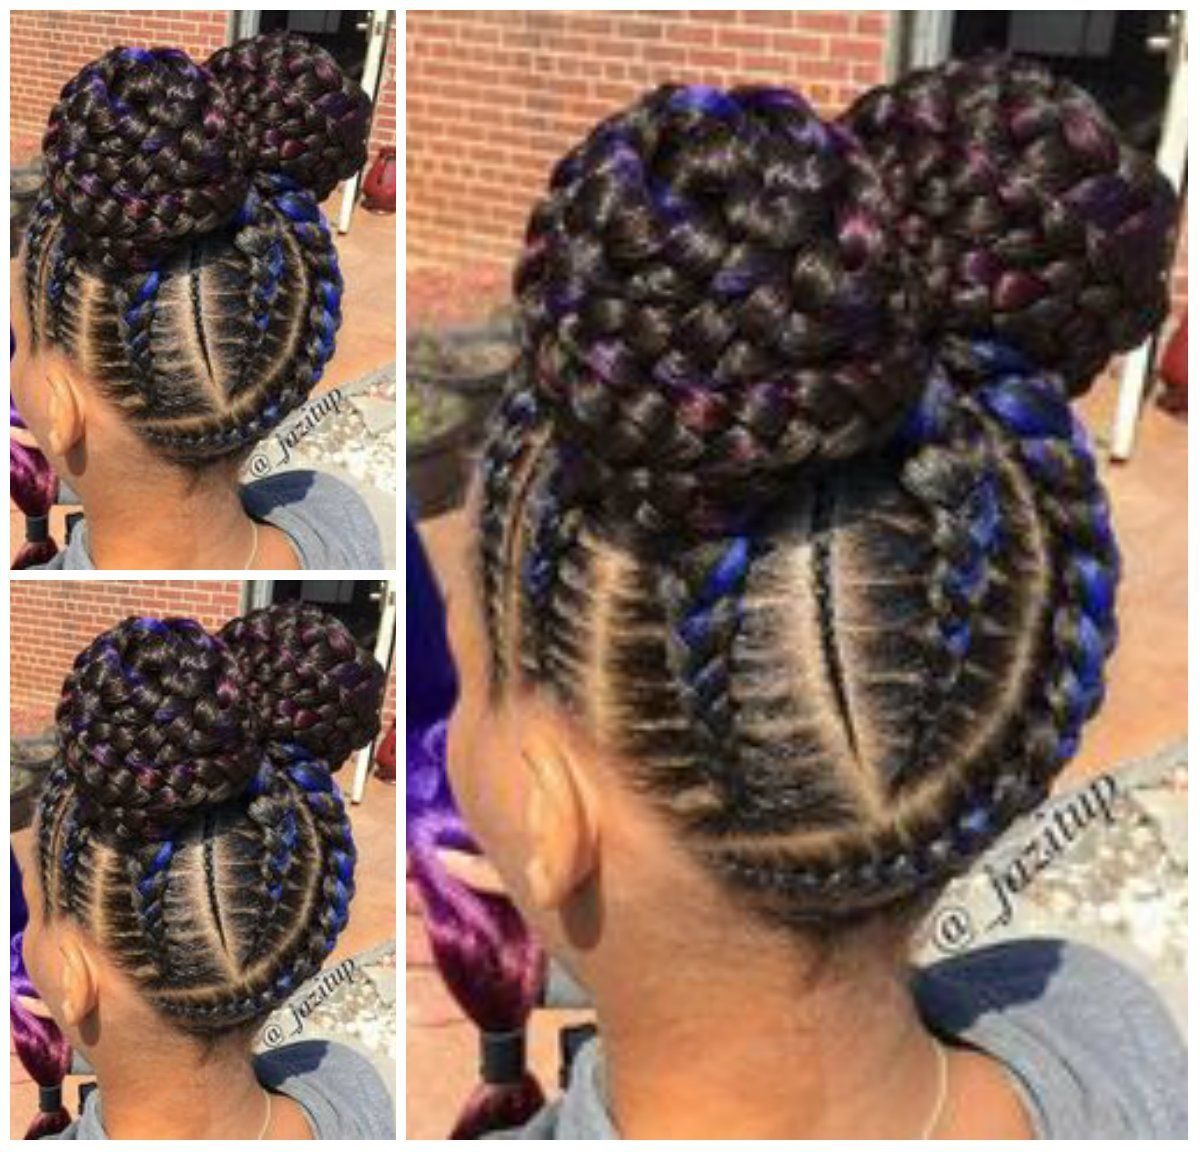 29 Braided Cornrows With Buns For Little Black Girls